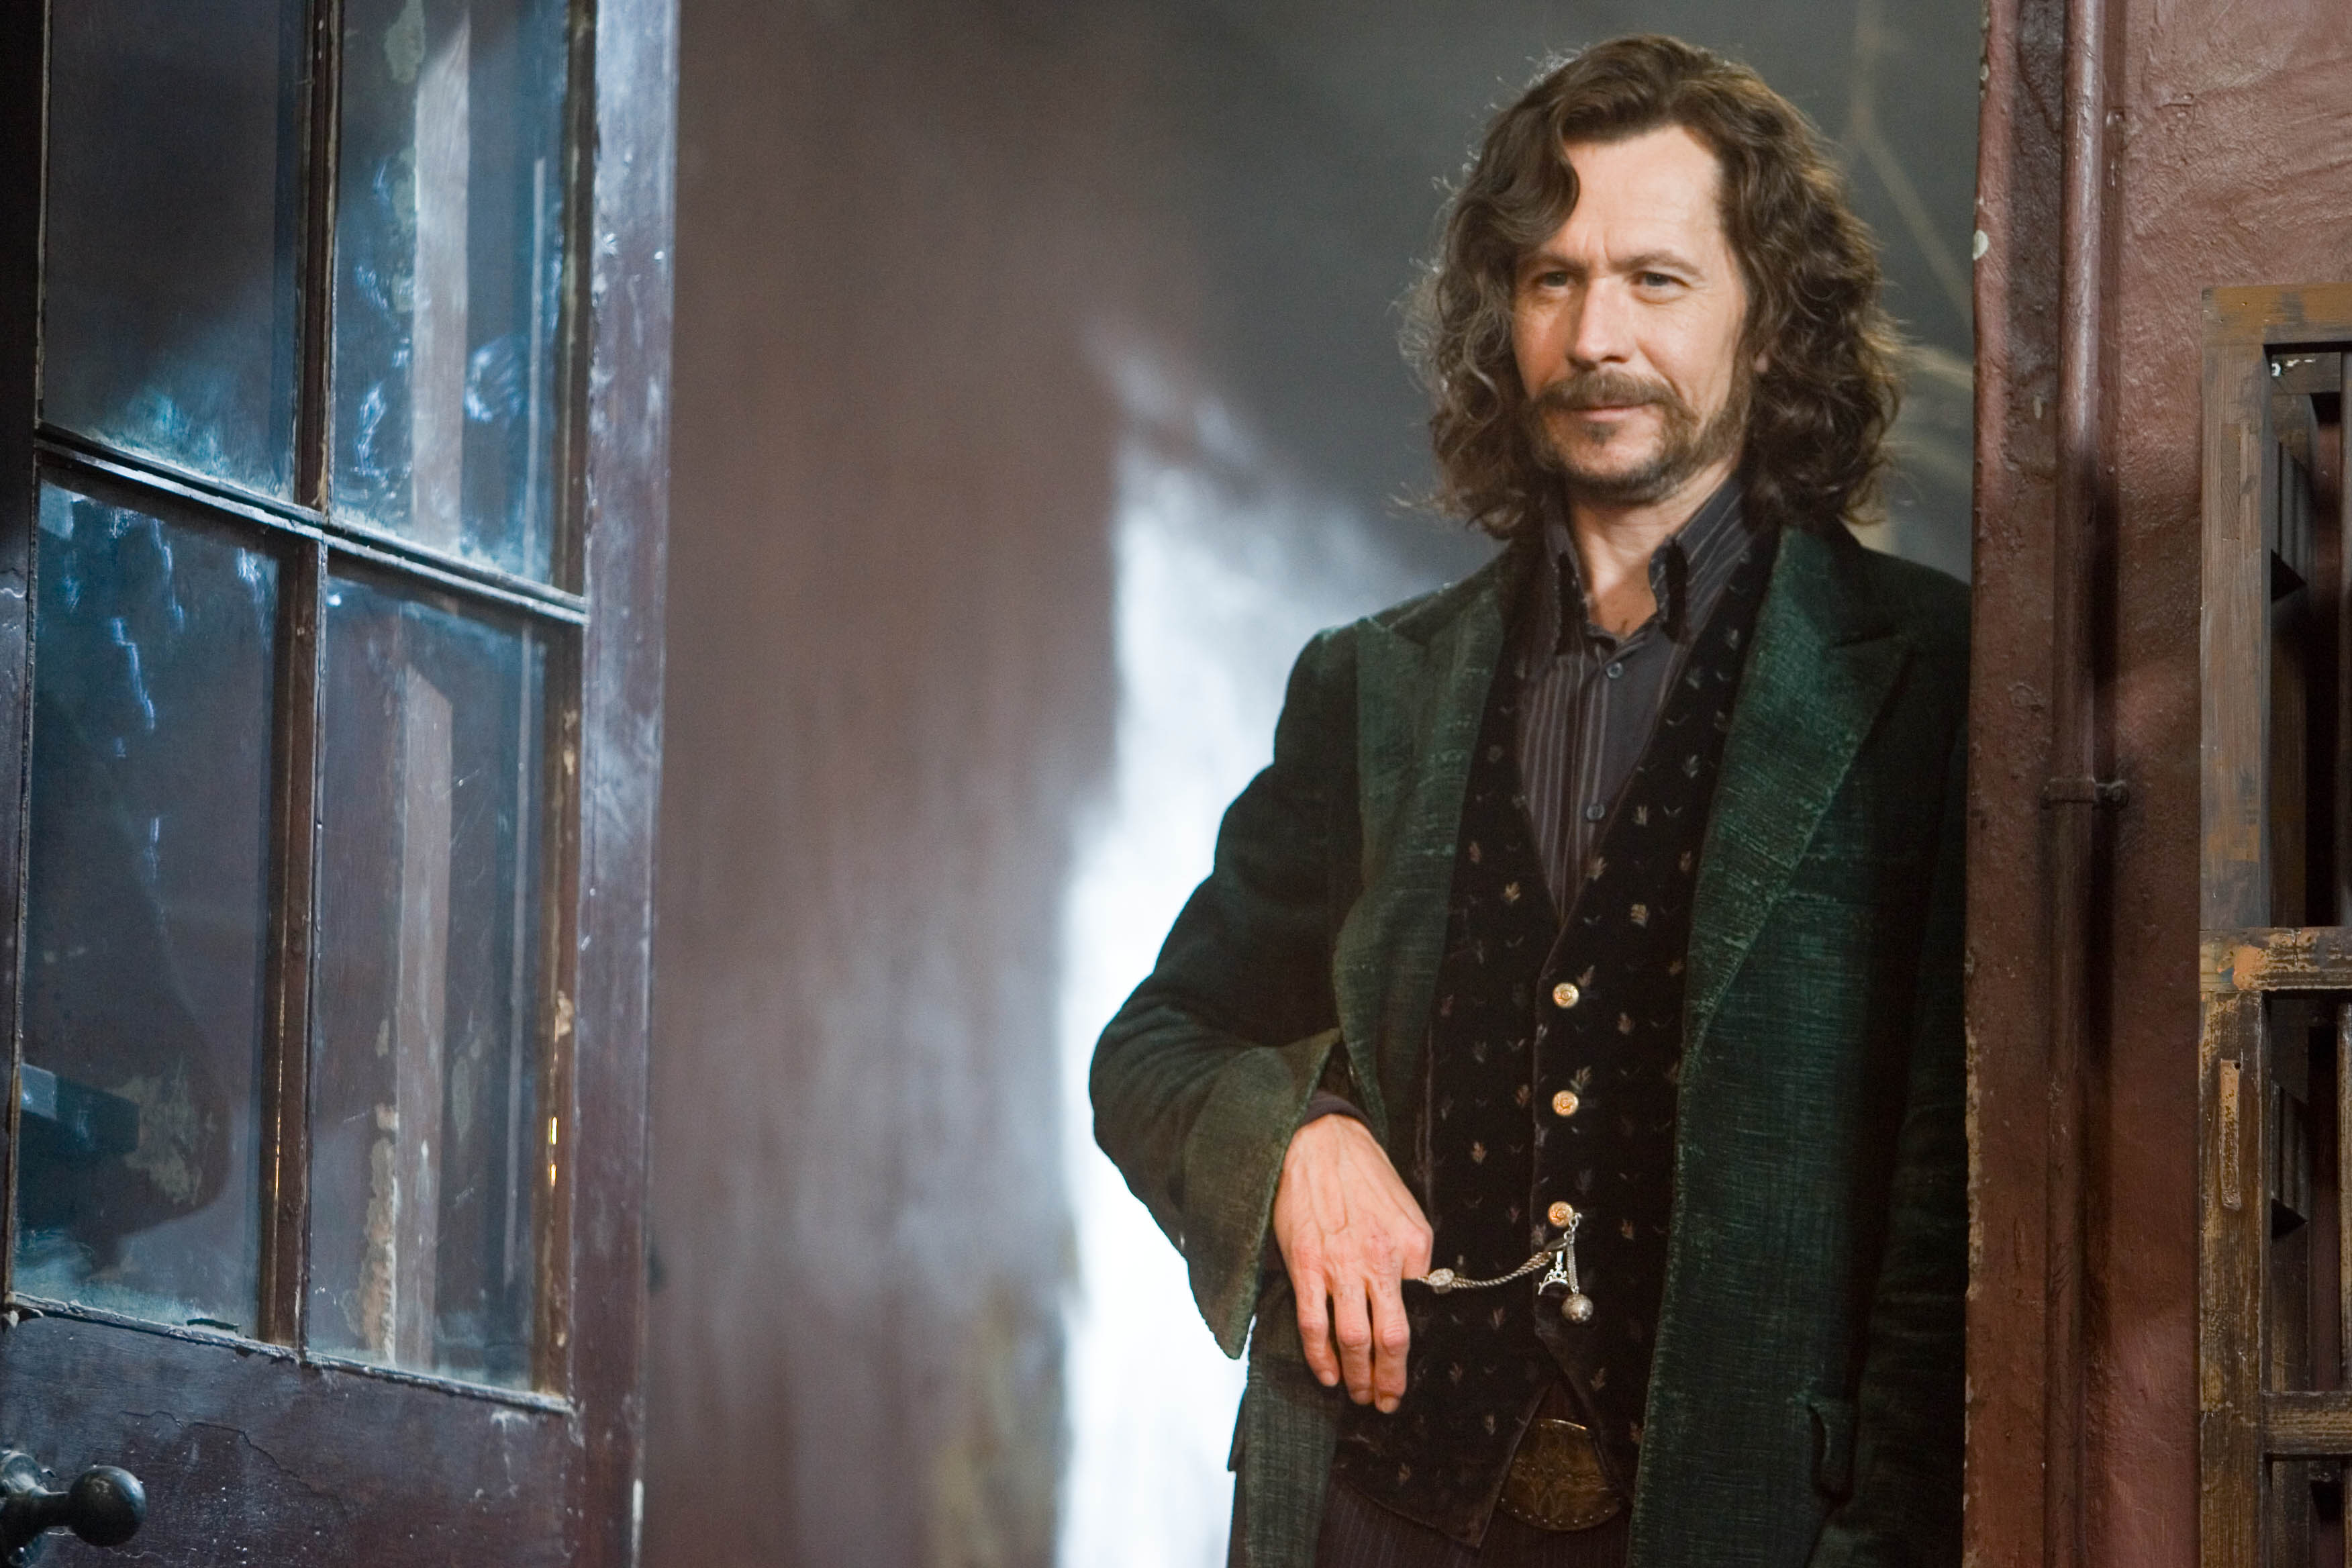 Sirius Black standing in doorway smiling